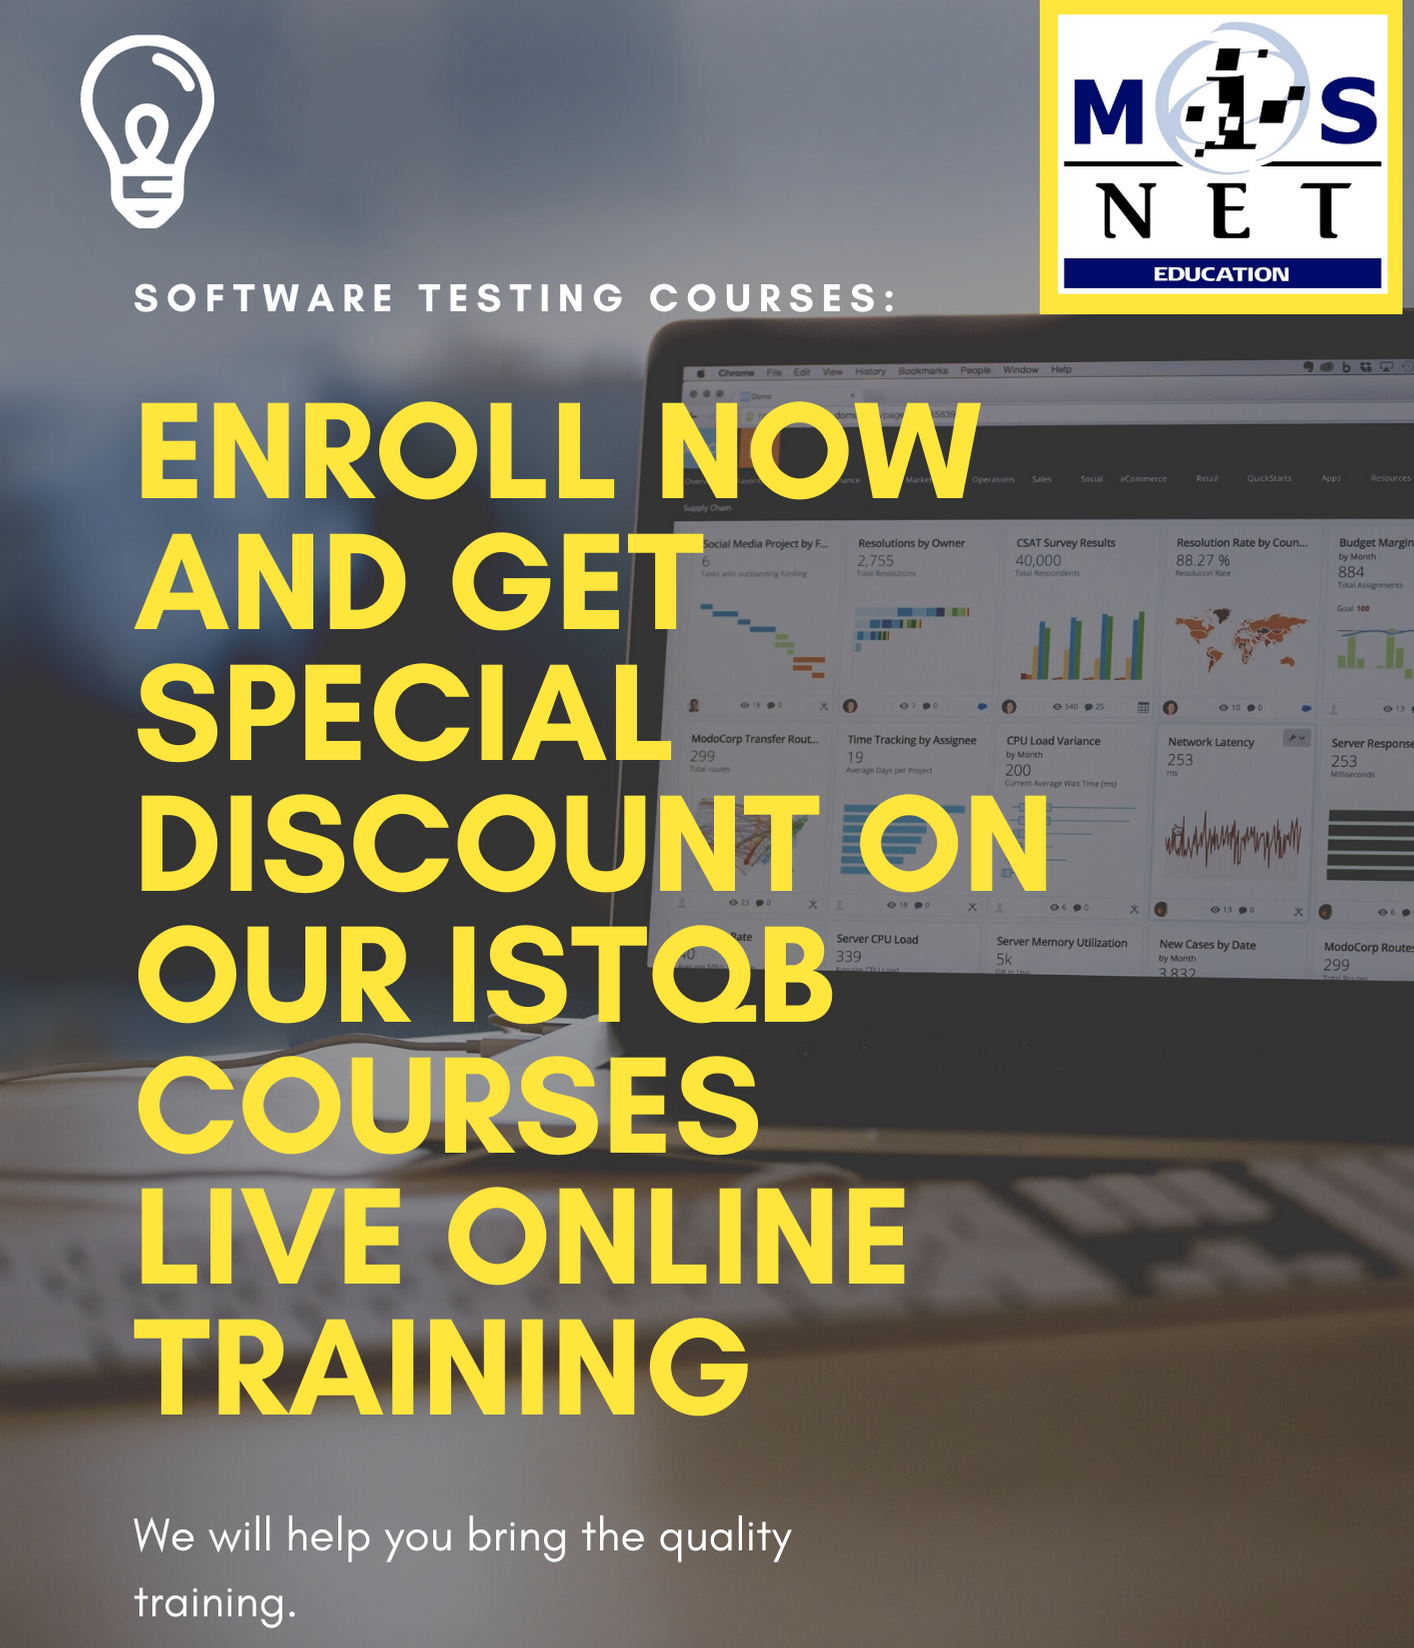 Enroll and Get a Special Discount on our ISTQB Courses Live Online Training. Scheduled Dates:  ?ISTQB Foundation Certificate - Open for Enrollment ?ISTQB Advanced Test Analyst - November 09 to 12, 2020 ?ISTQB Advanced Test Manager - November 16-20, 2020  Other Software Testing Courses: • ISTQB ADVANCED TECHNICAL TEST ANALYST • ISTQB ADVANCED TEST AUTOMATION ENGINEER • ISTQB ADVANCED SECURITY TESTER  Time: 9:00 AM - 5:00 PM each day  Please send your email to jaer@misnet-education.com to register or message us here on our Facebook page.  #learning #courses #onlinetraining #istqb #misneteduc #softwaretesting #planit